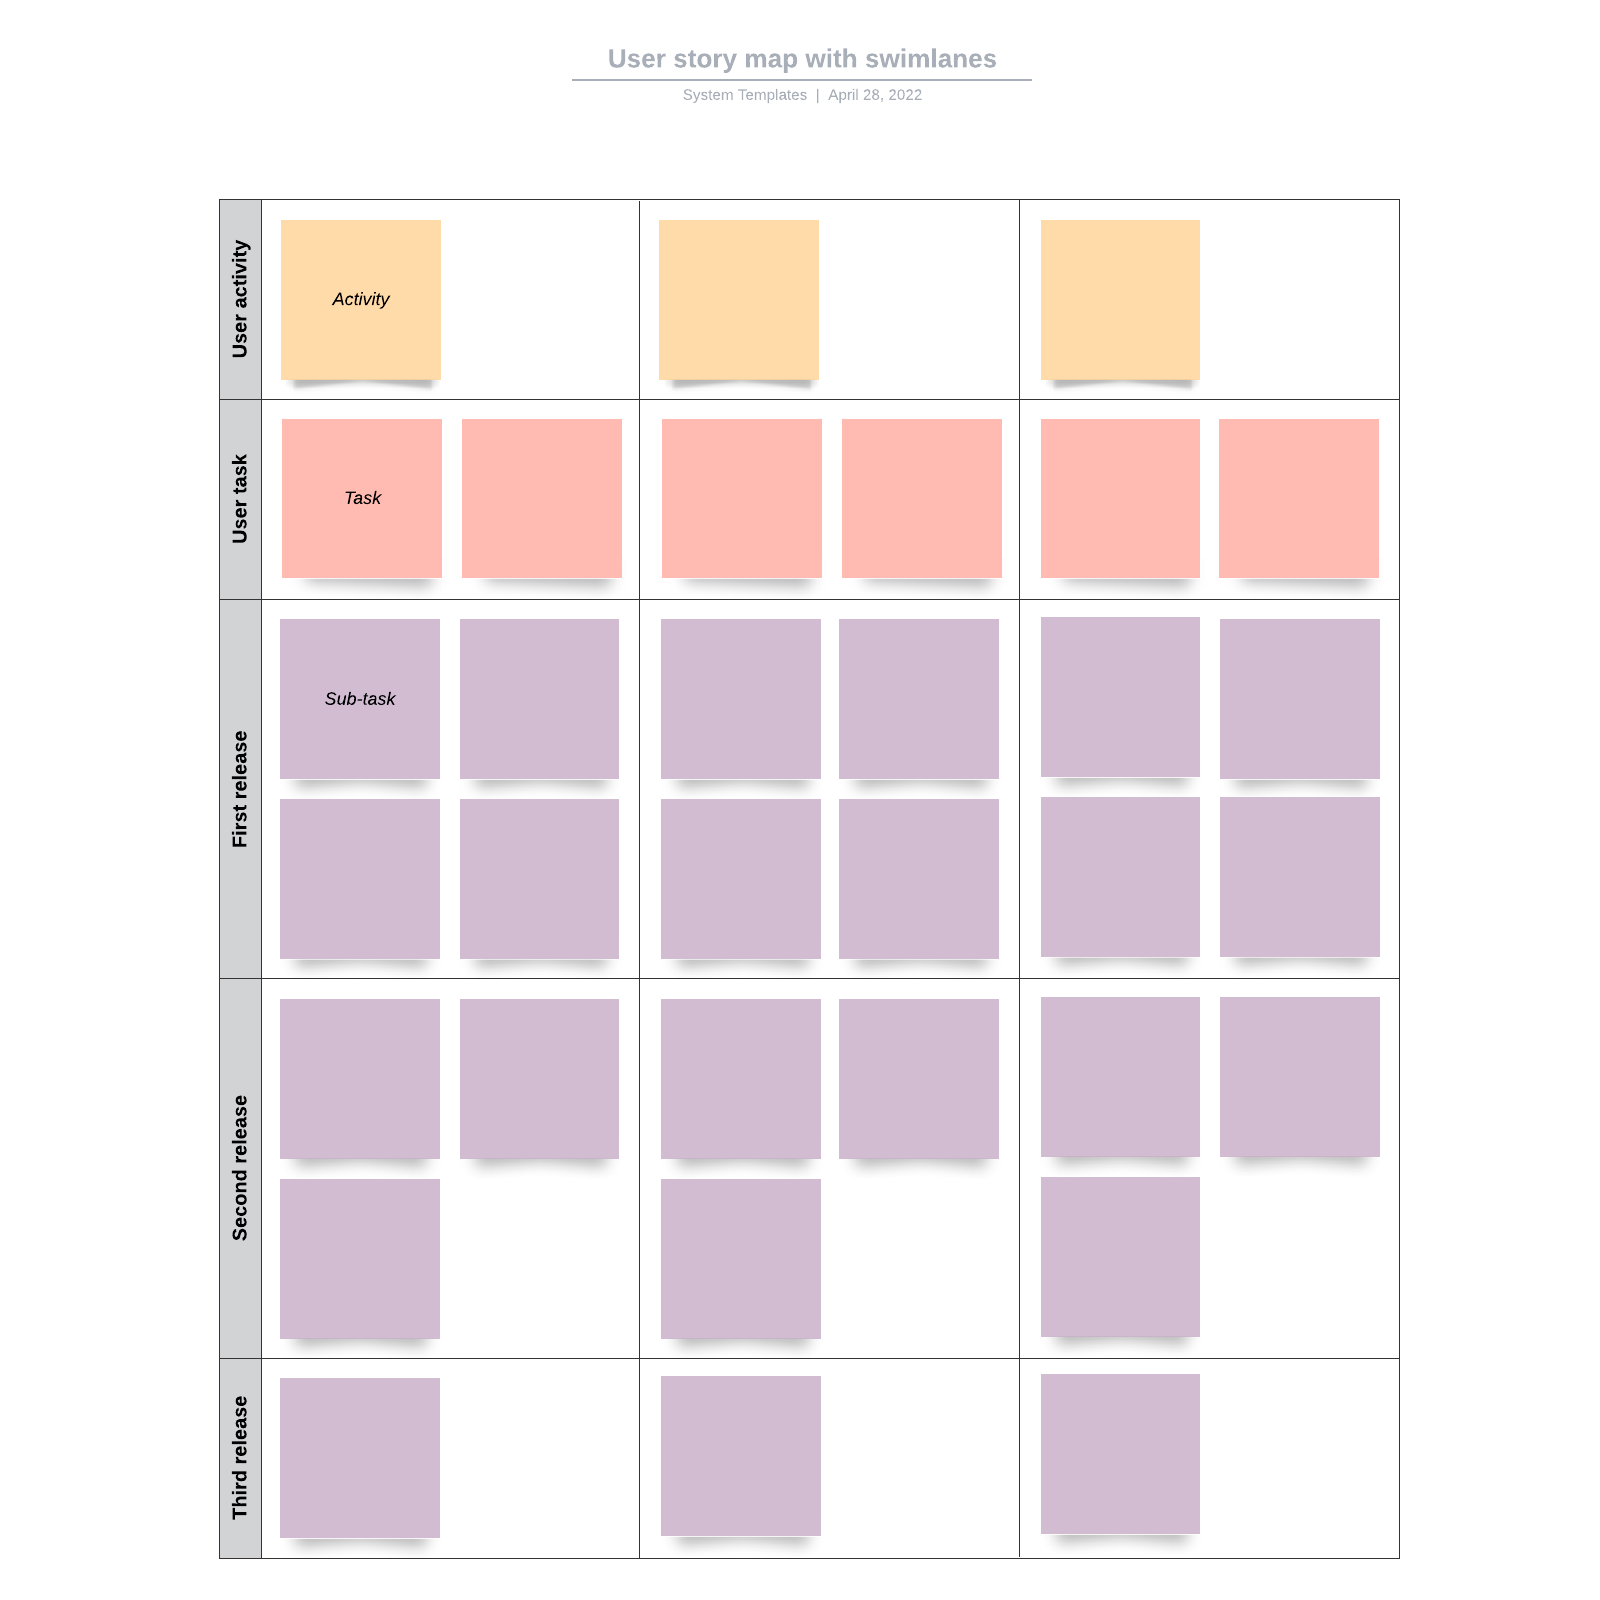 User story map with swimlanes